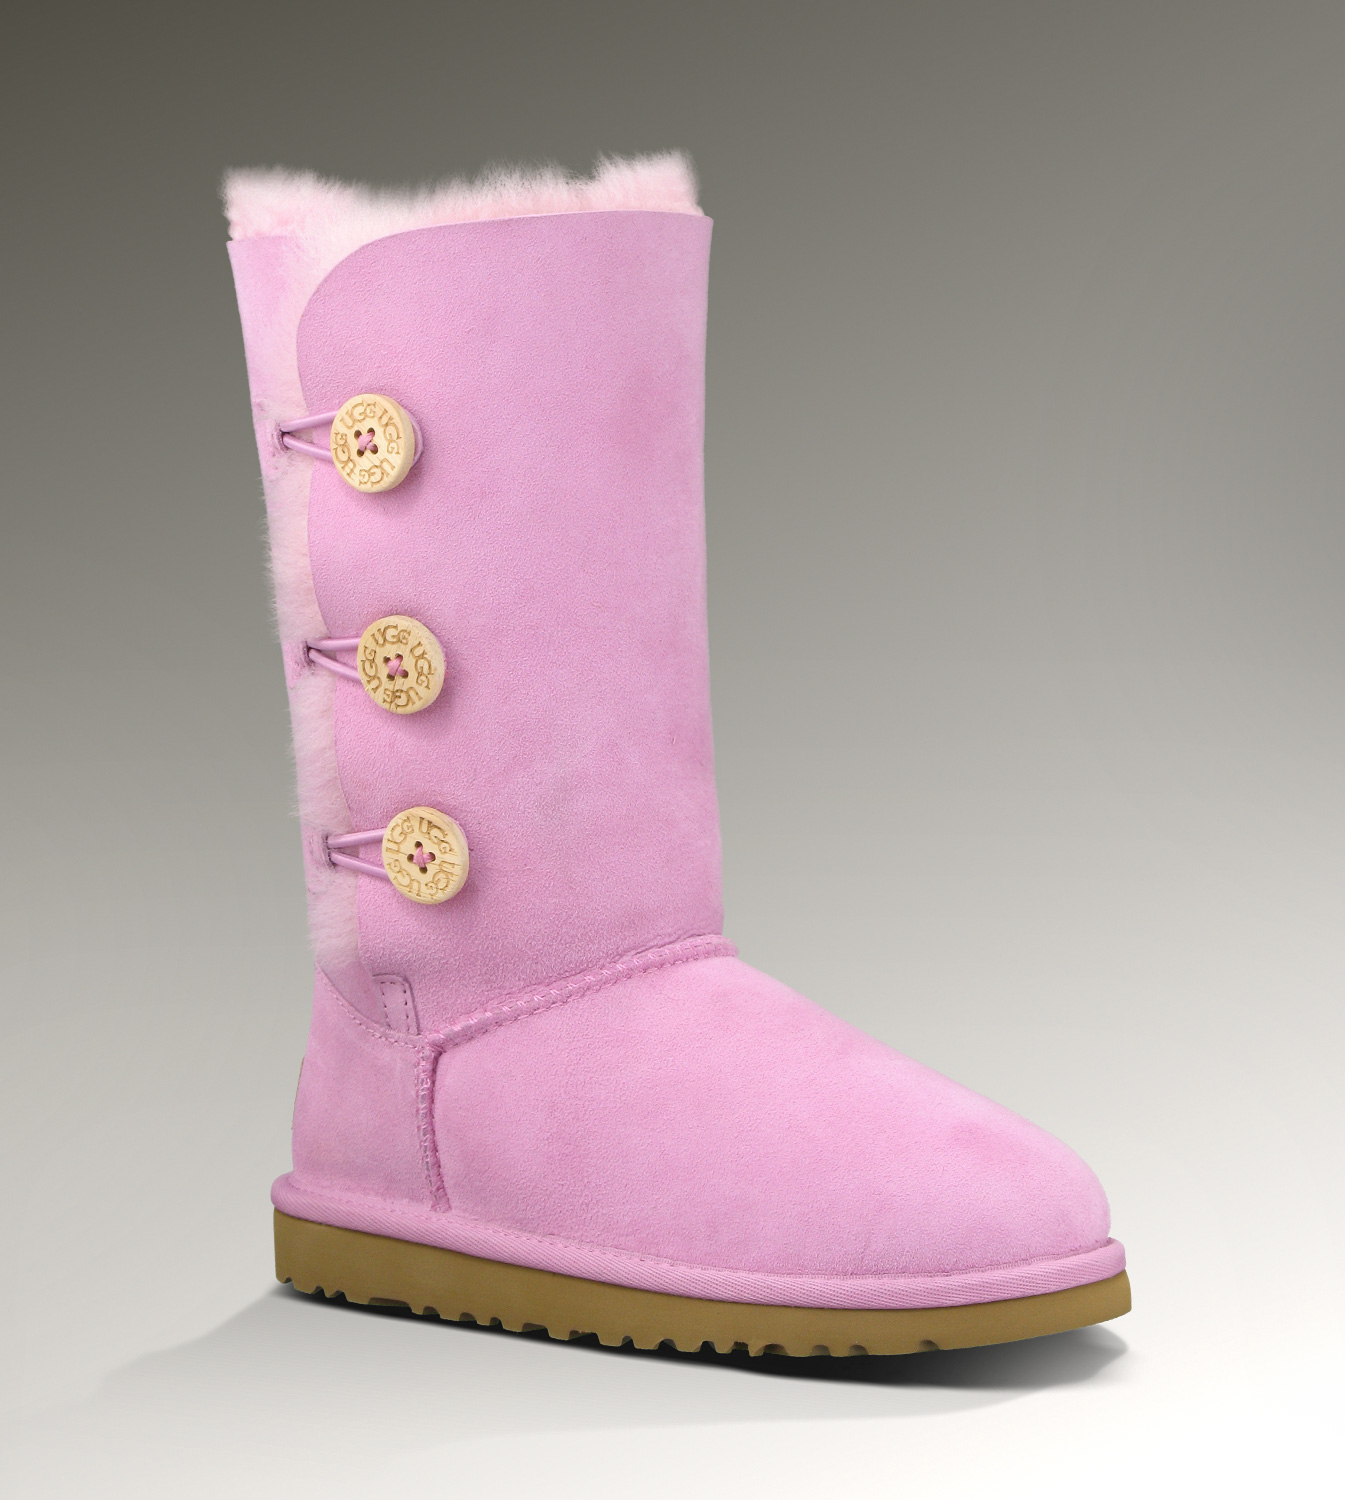 375a2ec26eb UGG Bailey Button Triplet 1962 Pink Boots [UGG151012-055] - $100.00 ...